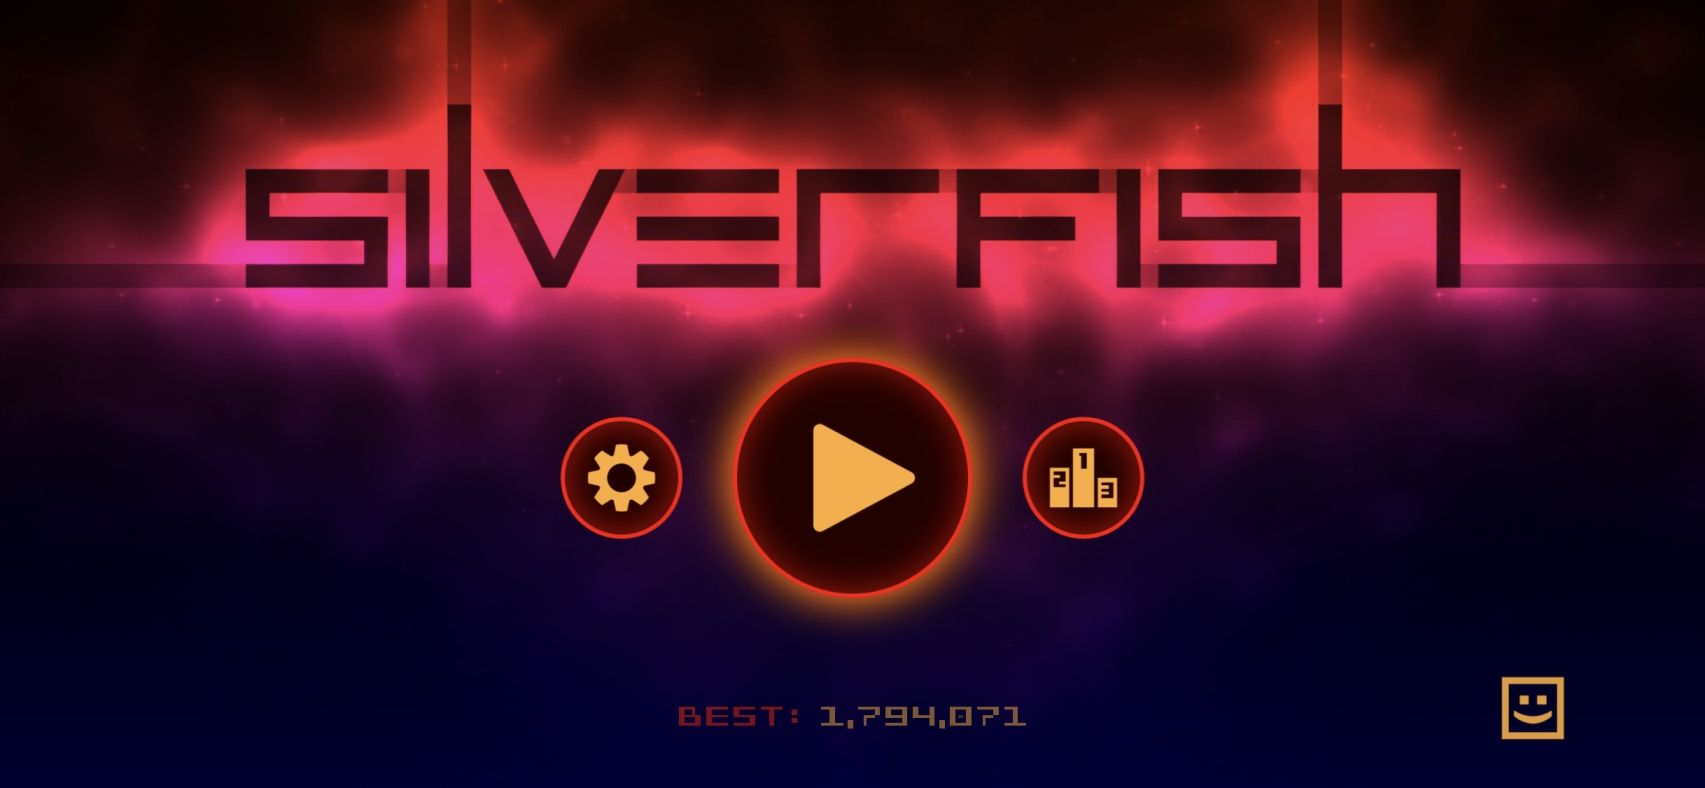 Silverfish DX (copie d'écran 1 sur iPhone / iPad / Apple TV)